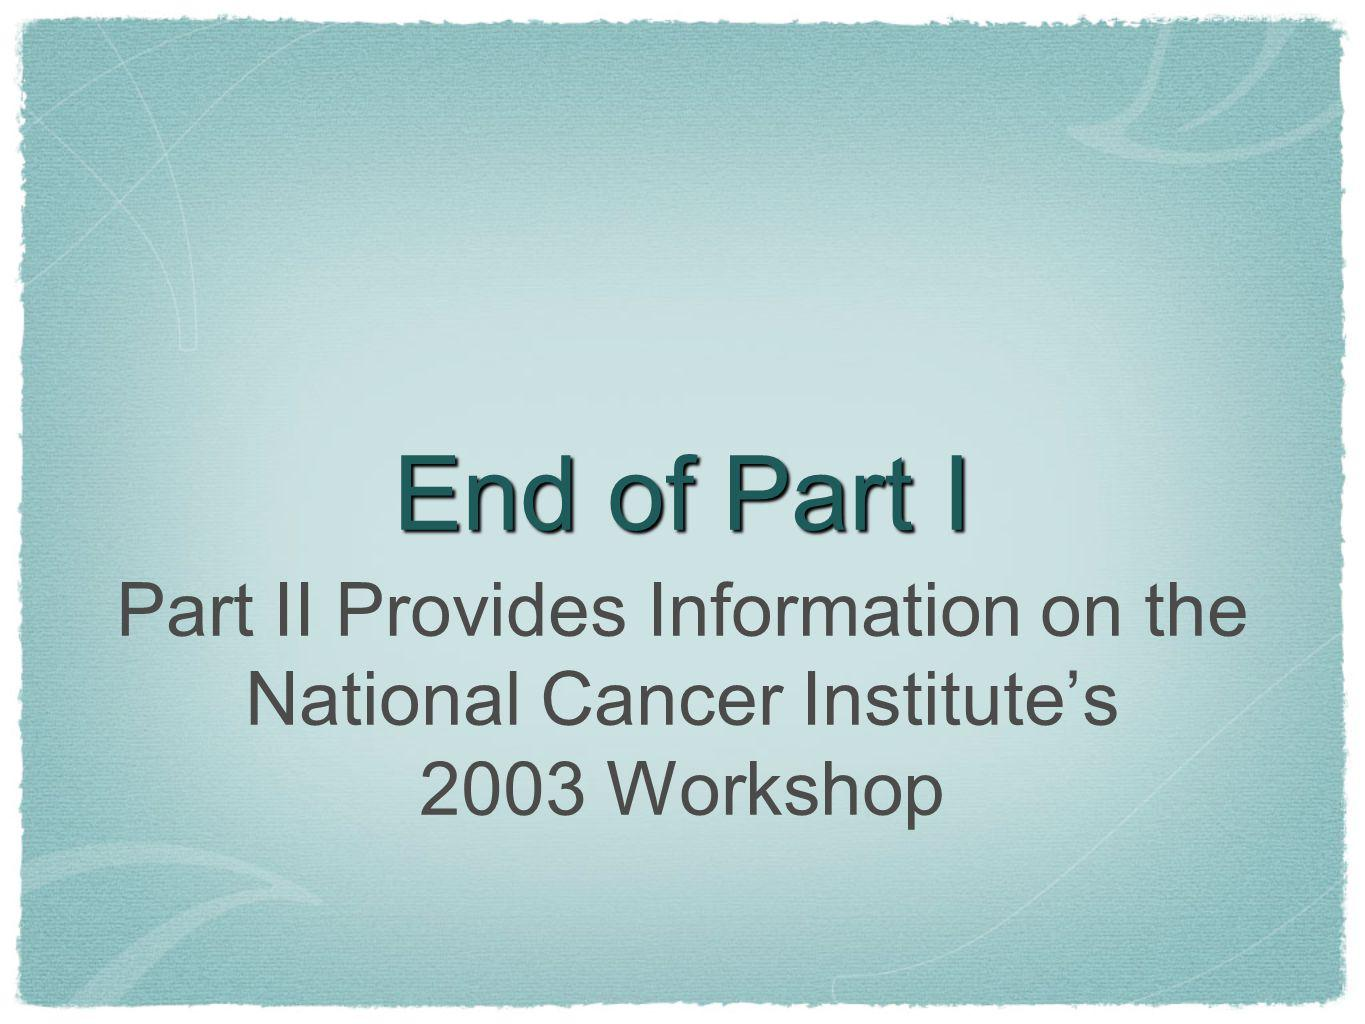 Part II Provides Information on the National Cancer Institute's